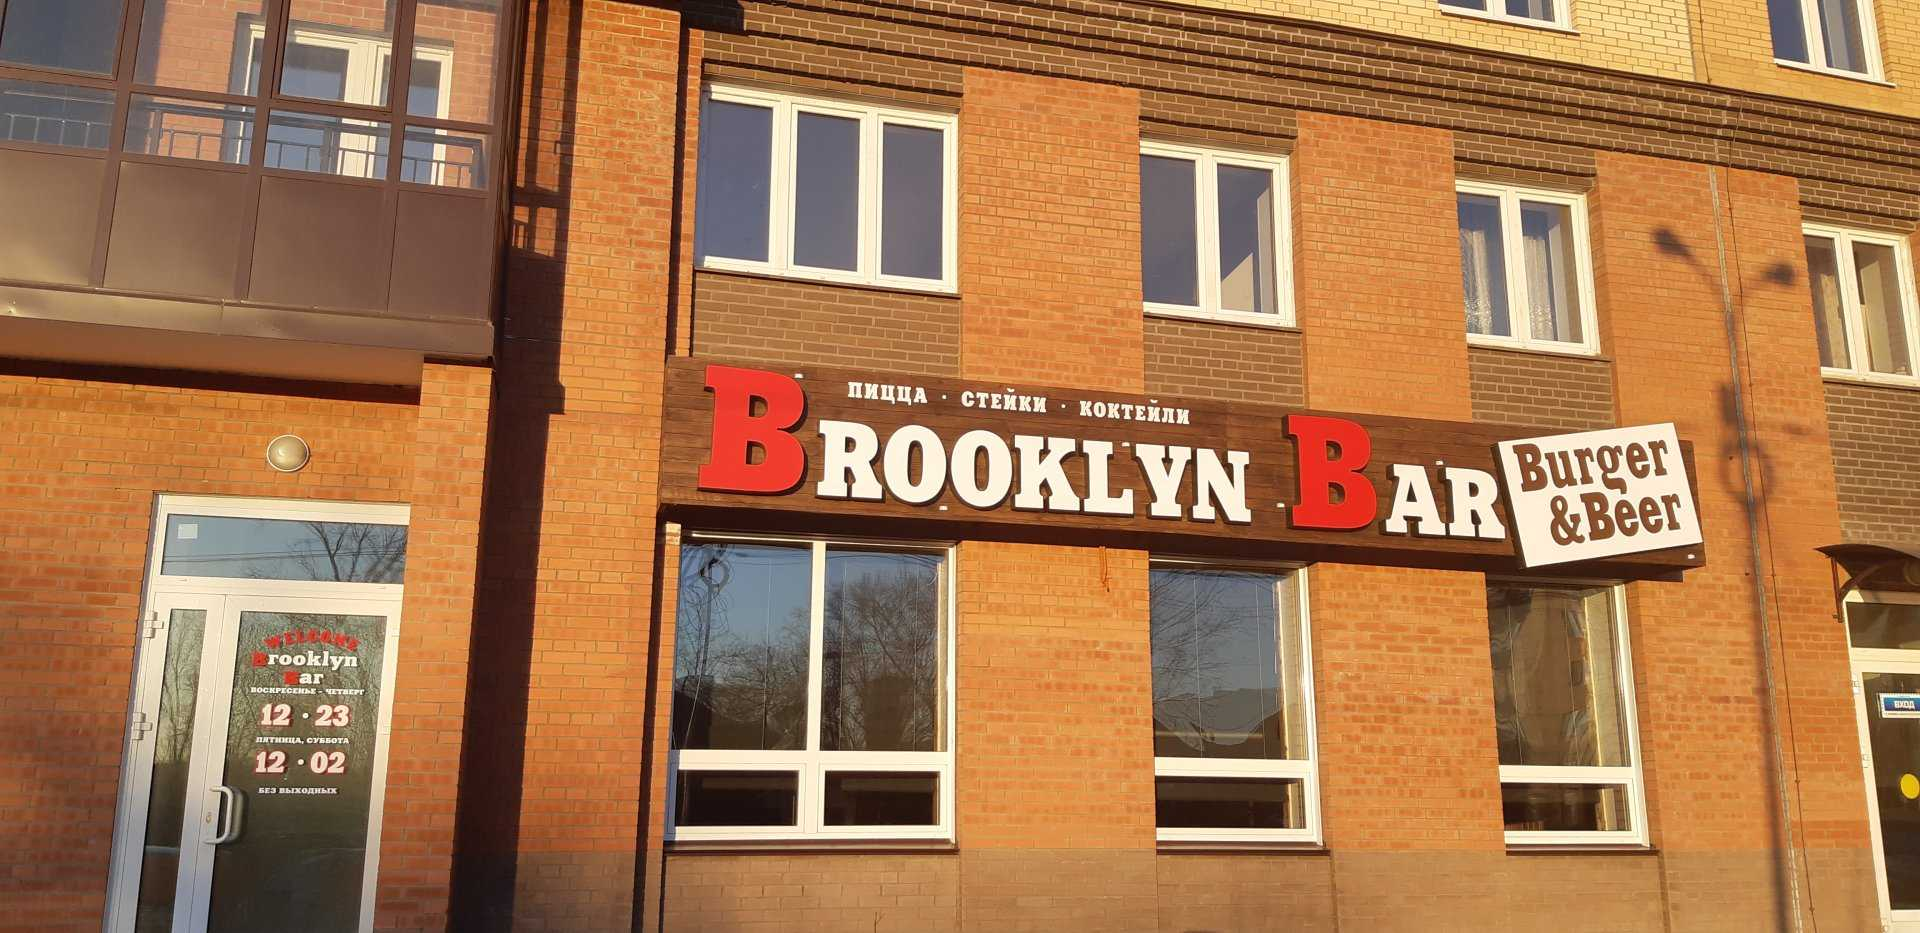 кафе-бар Brooklyn Bar фото 1